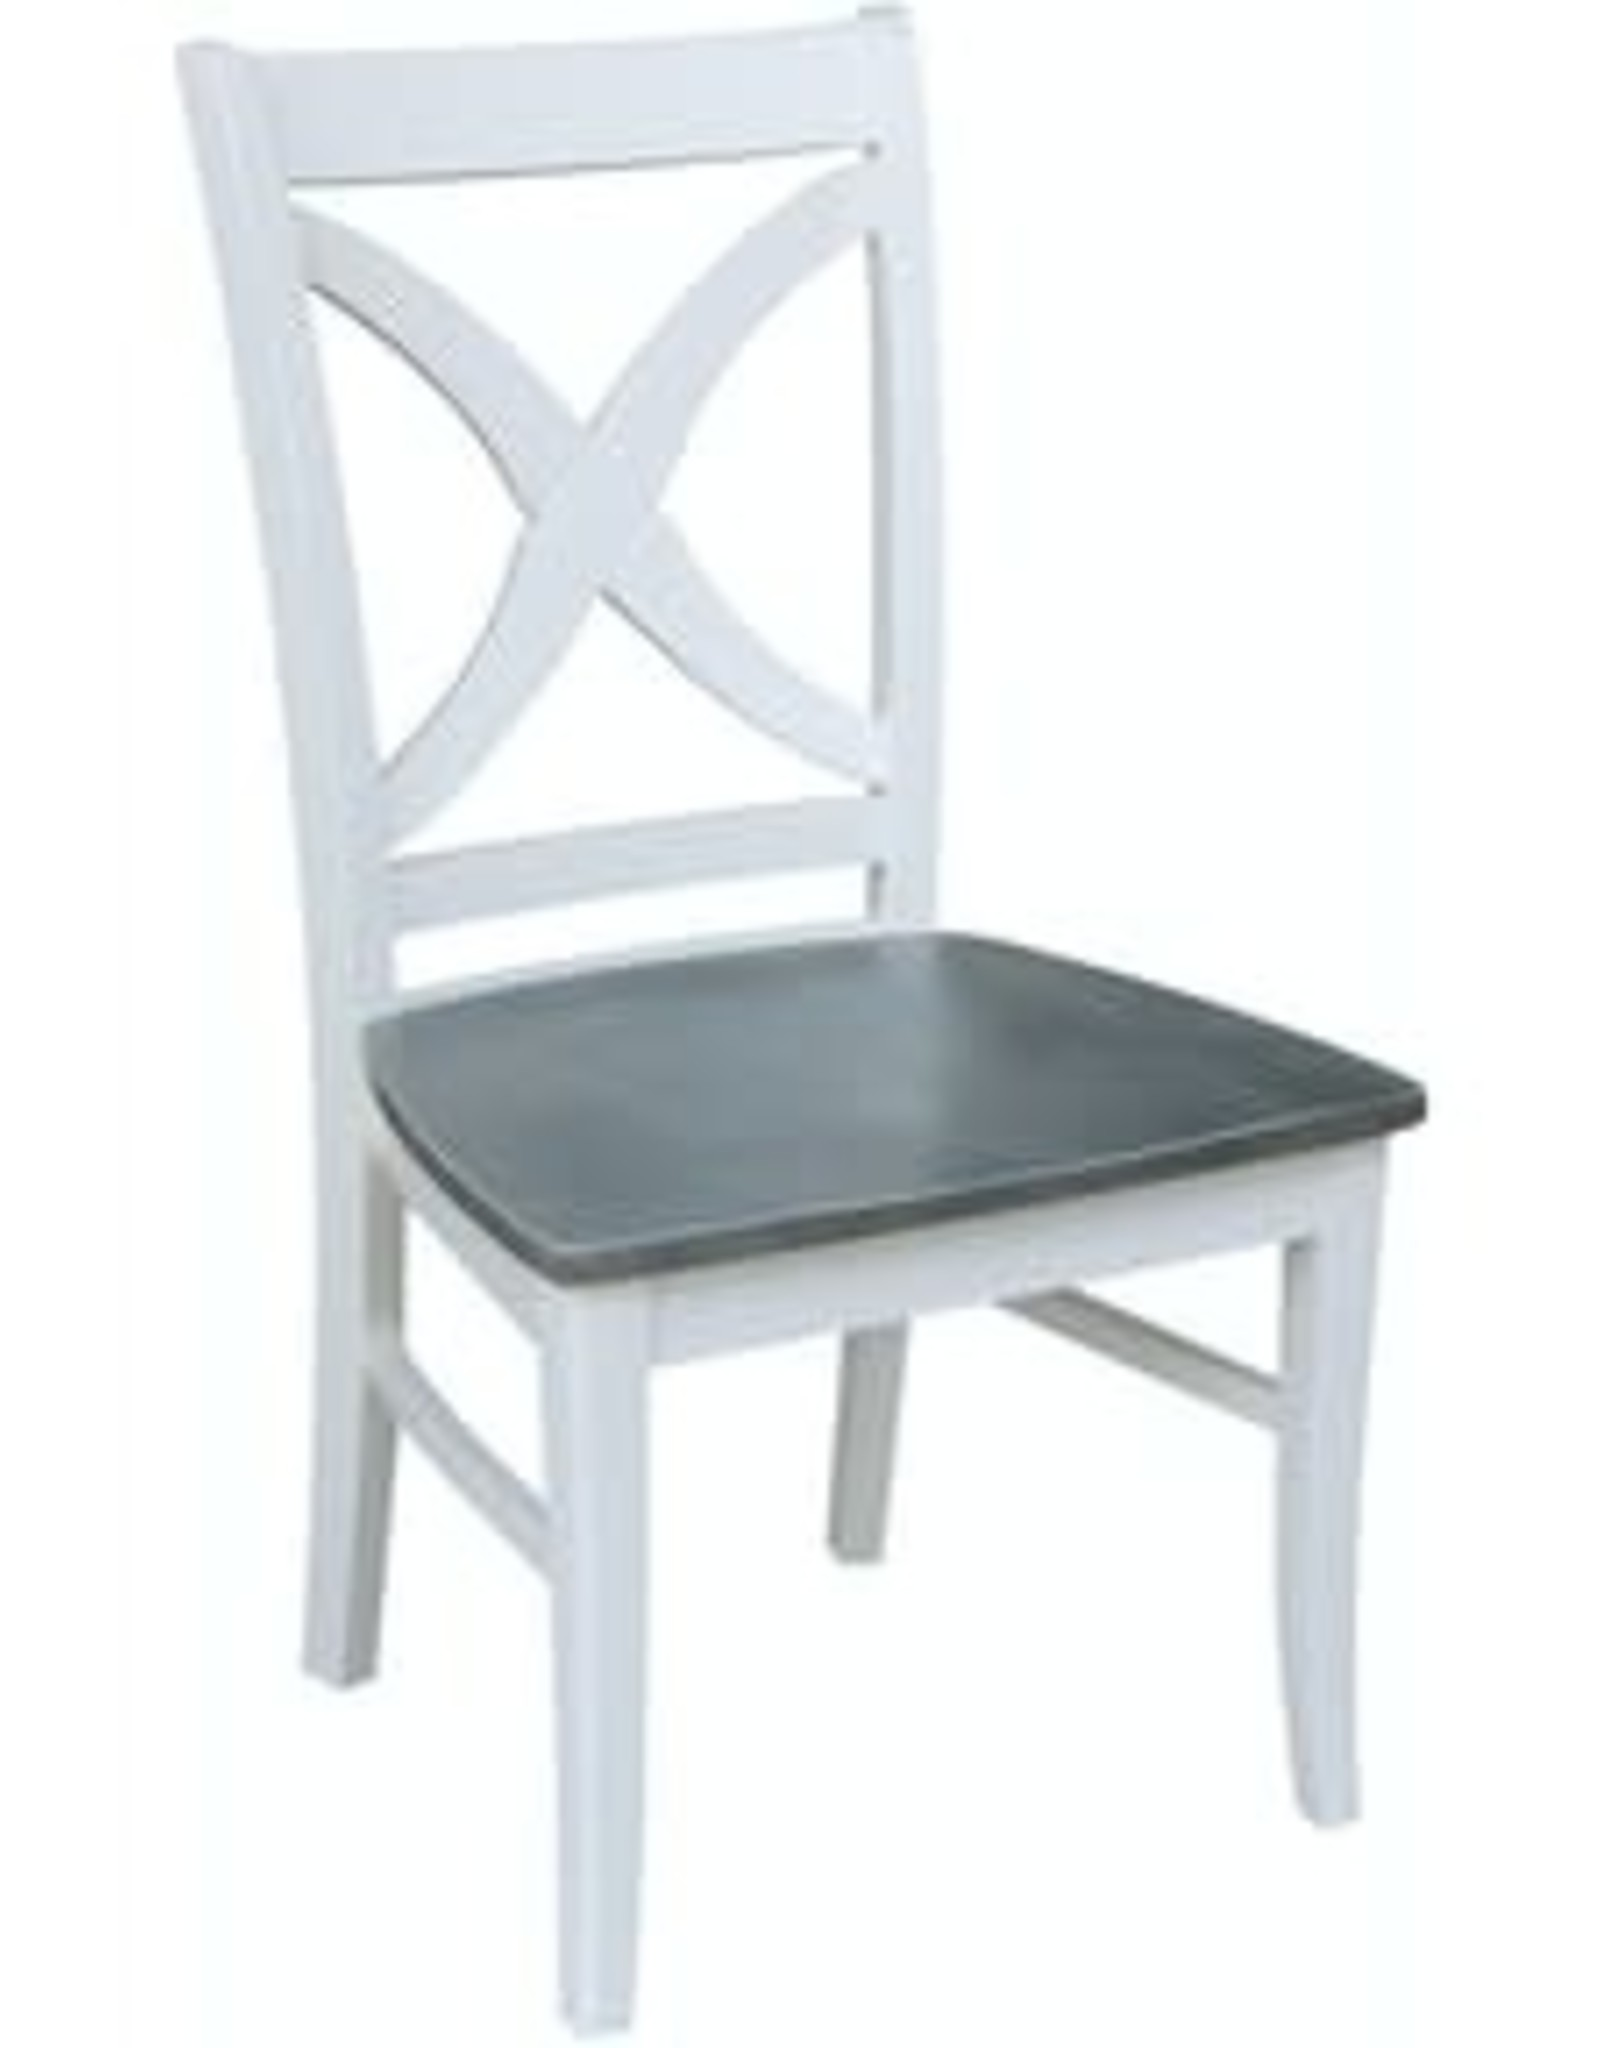 Whitewood Cosmopolitan Salerno Chair (Available in 4 Finishes)